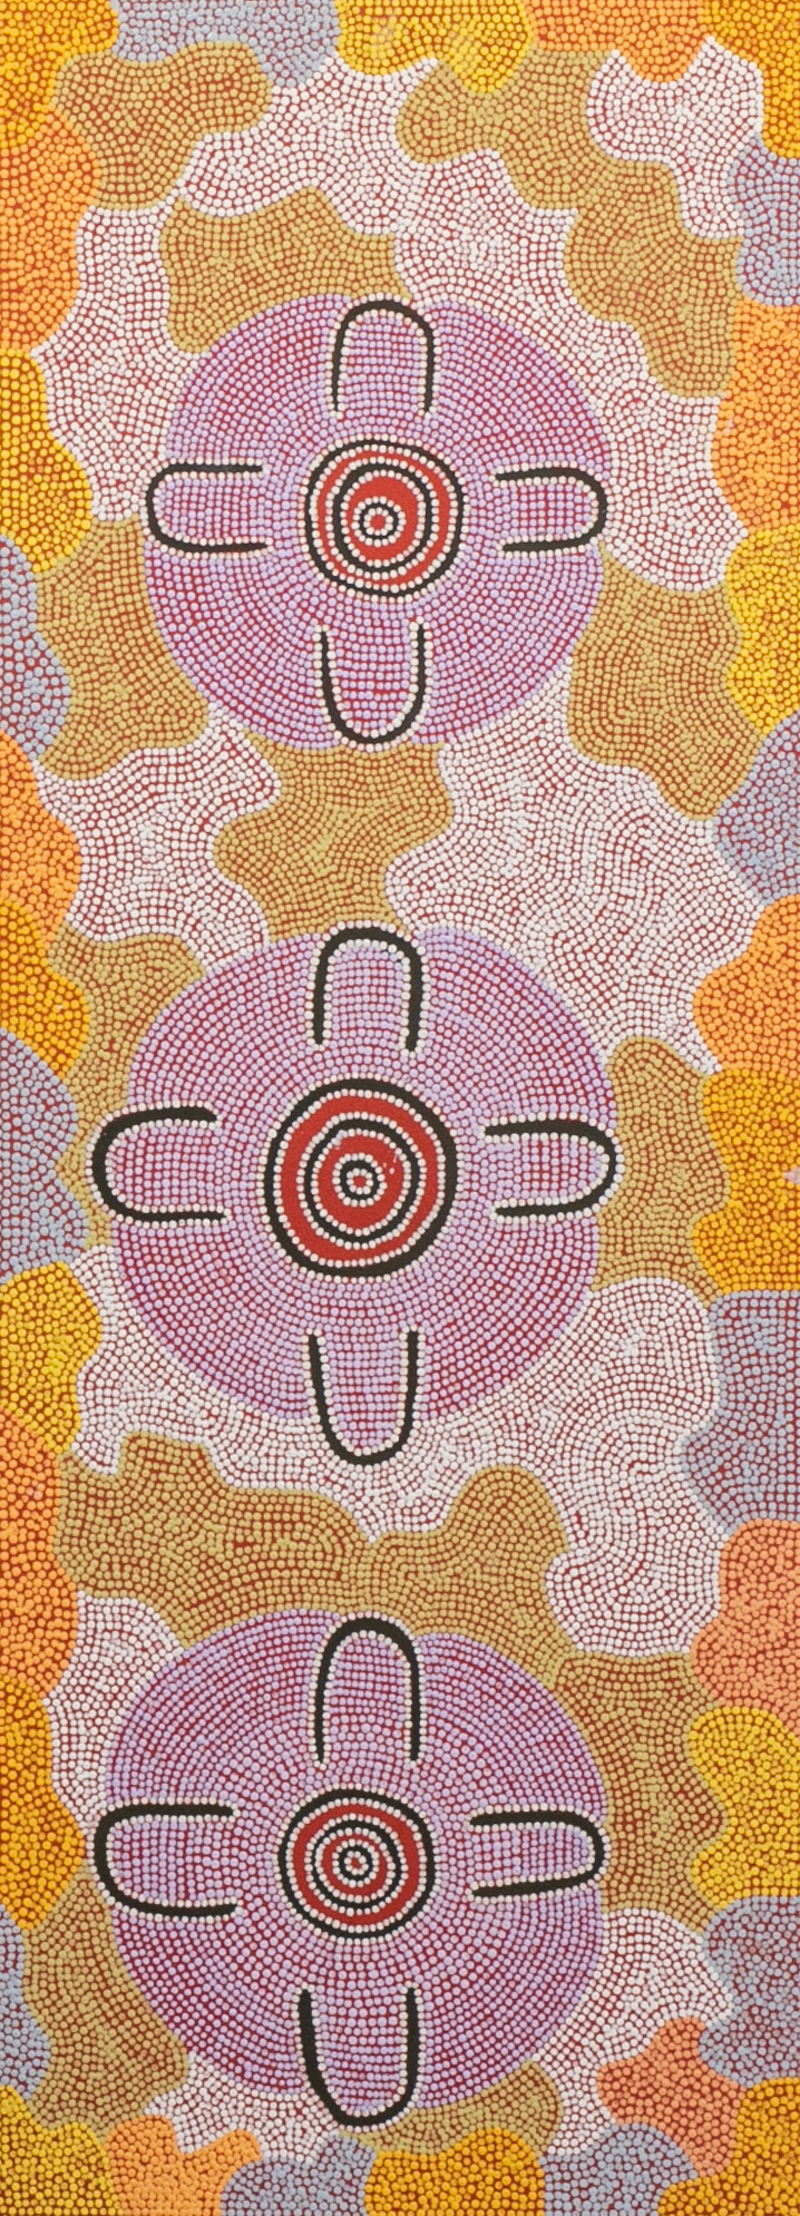 (CreativeWork) Kapi Tjukurrpa - 513-18 by Ada Andy Napaltjarri. arcylic-painting. Shop online at Bluethumb.